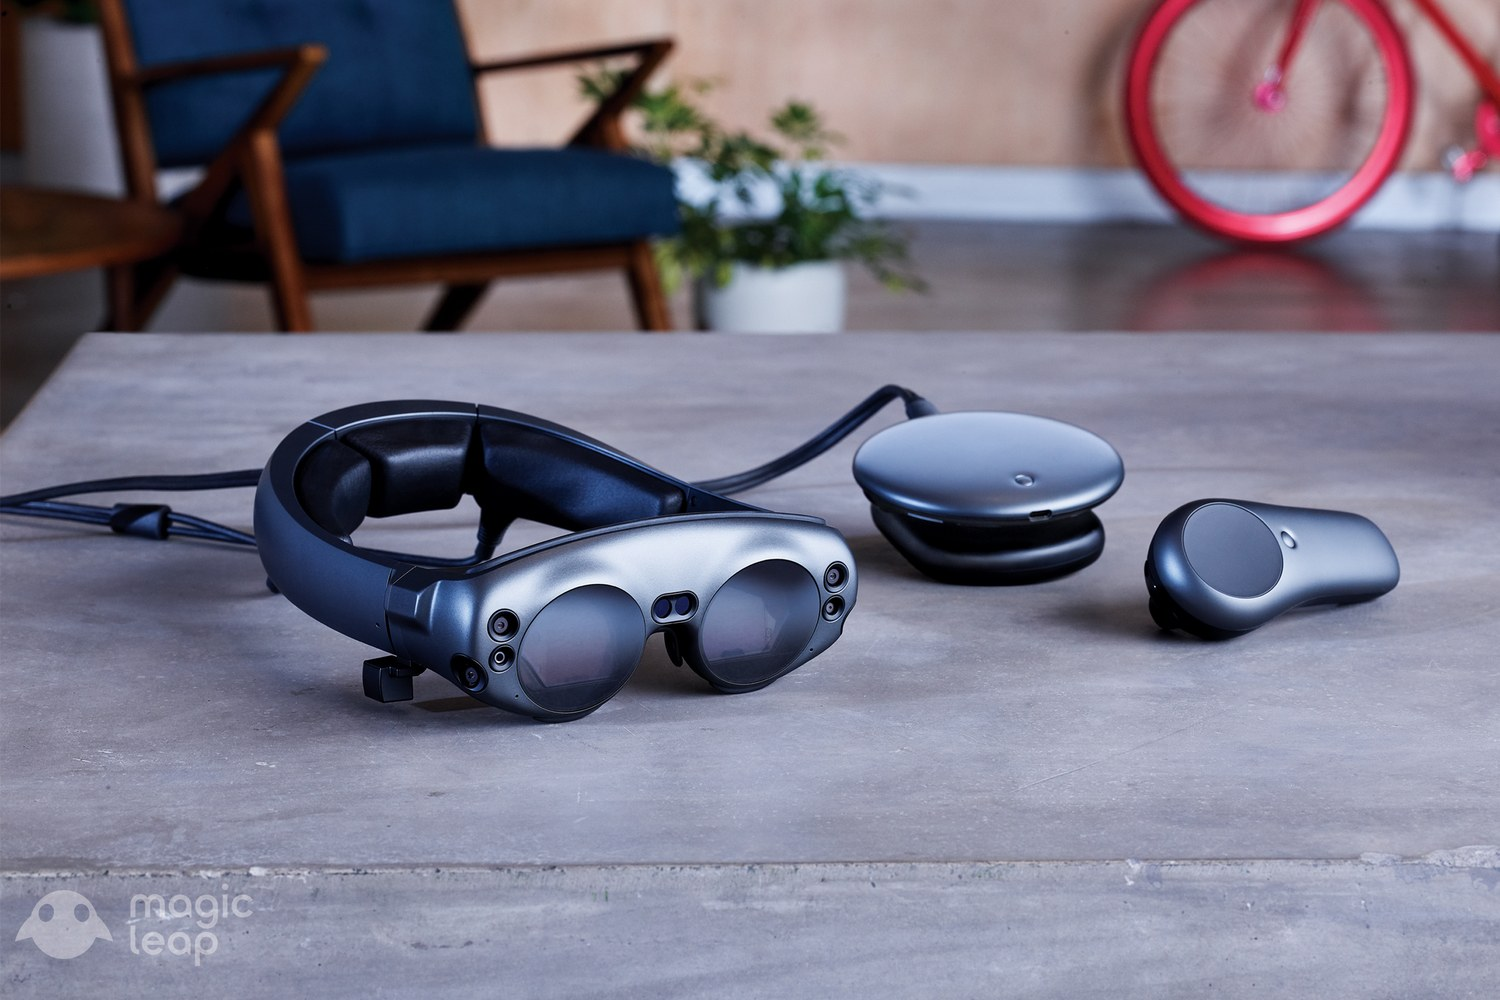 iFixit tears down the Magic Leap One, comes away less than impressed